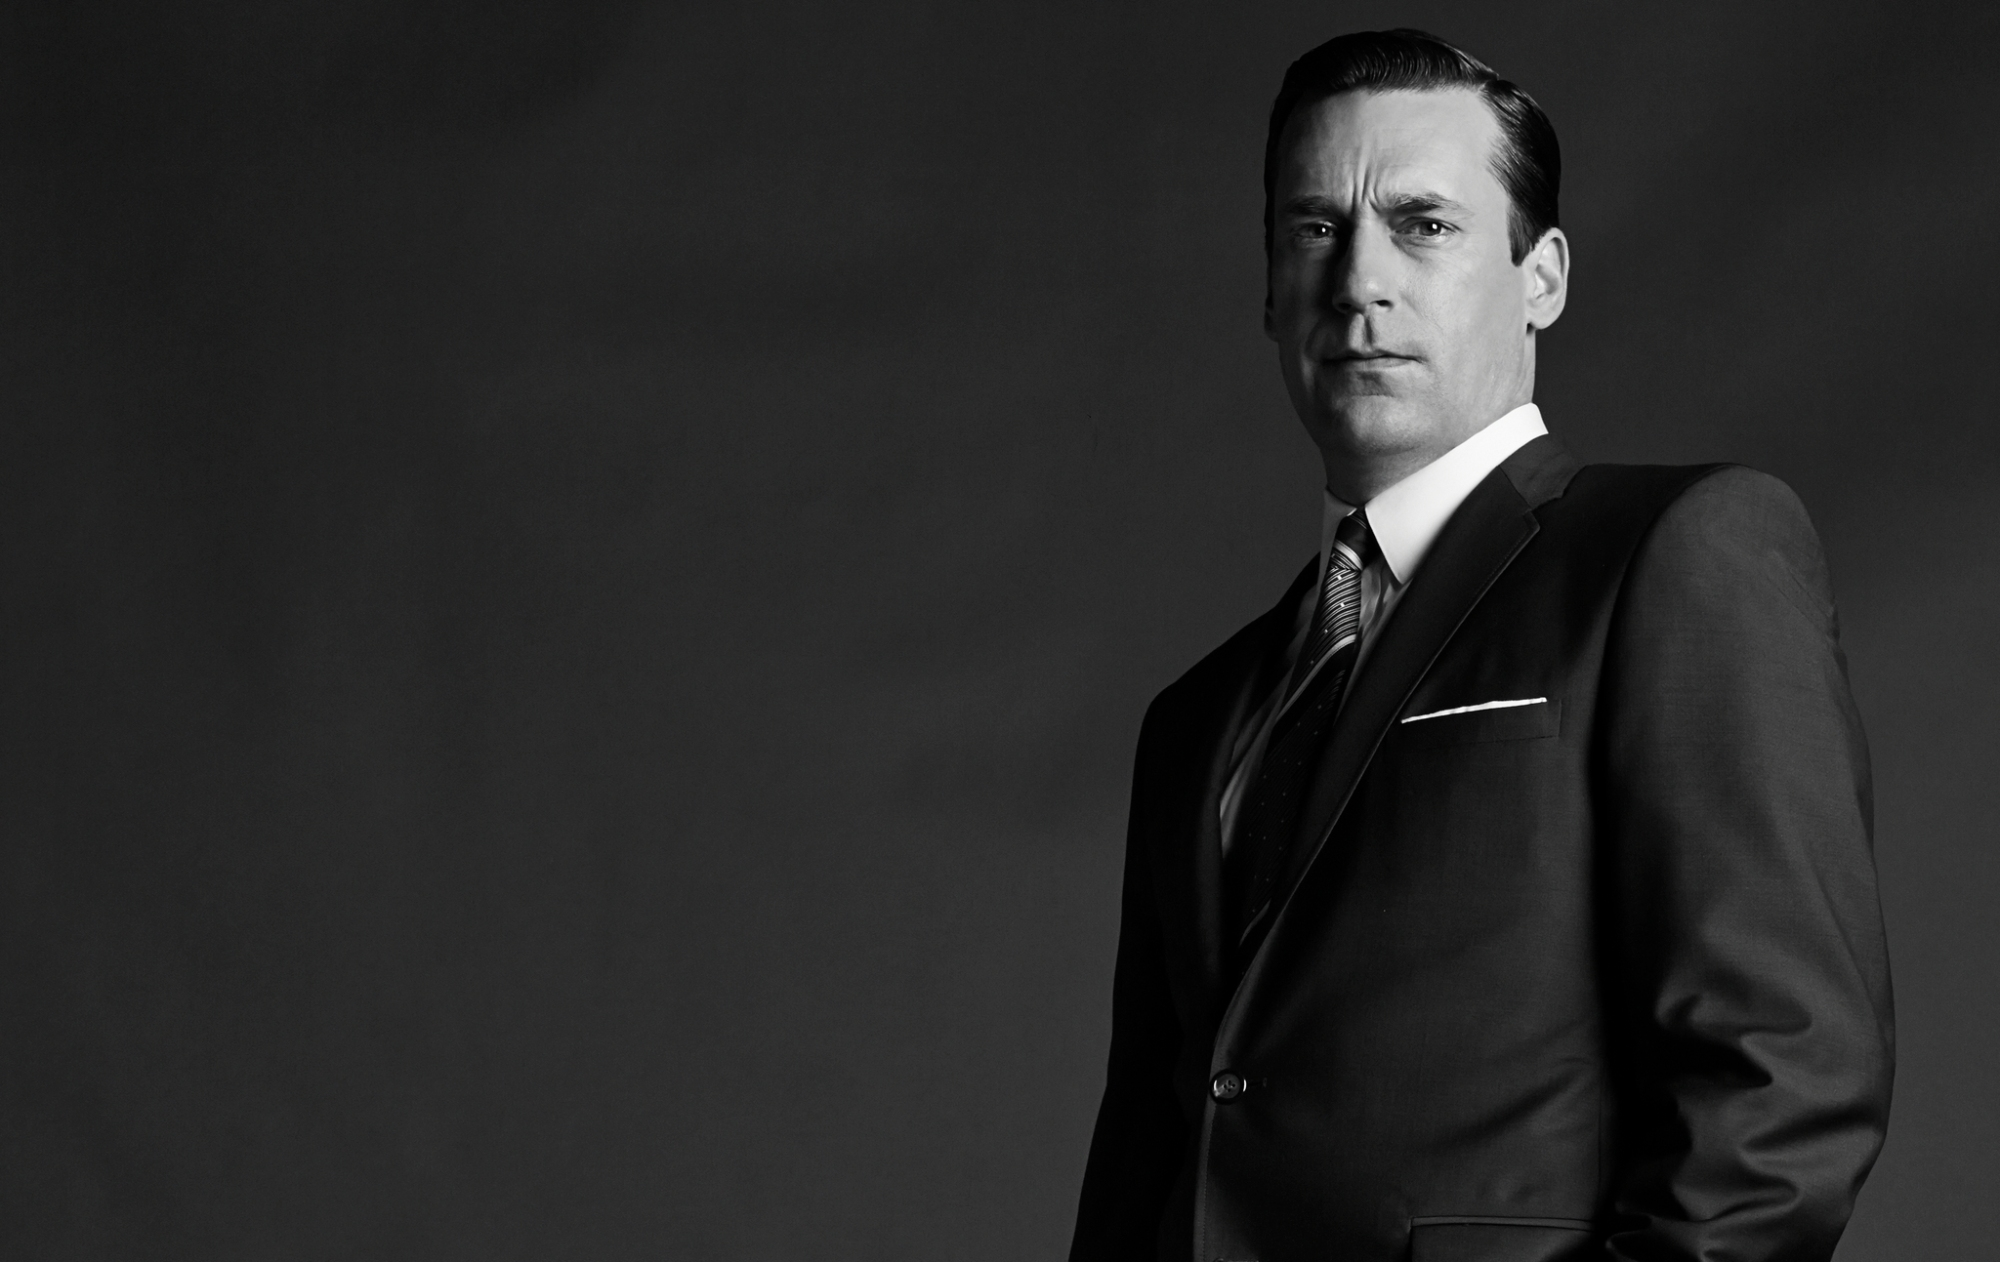 16 Inspiring Quotes from Mad Men's Don Draper